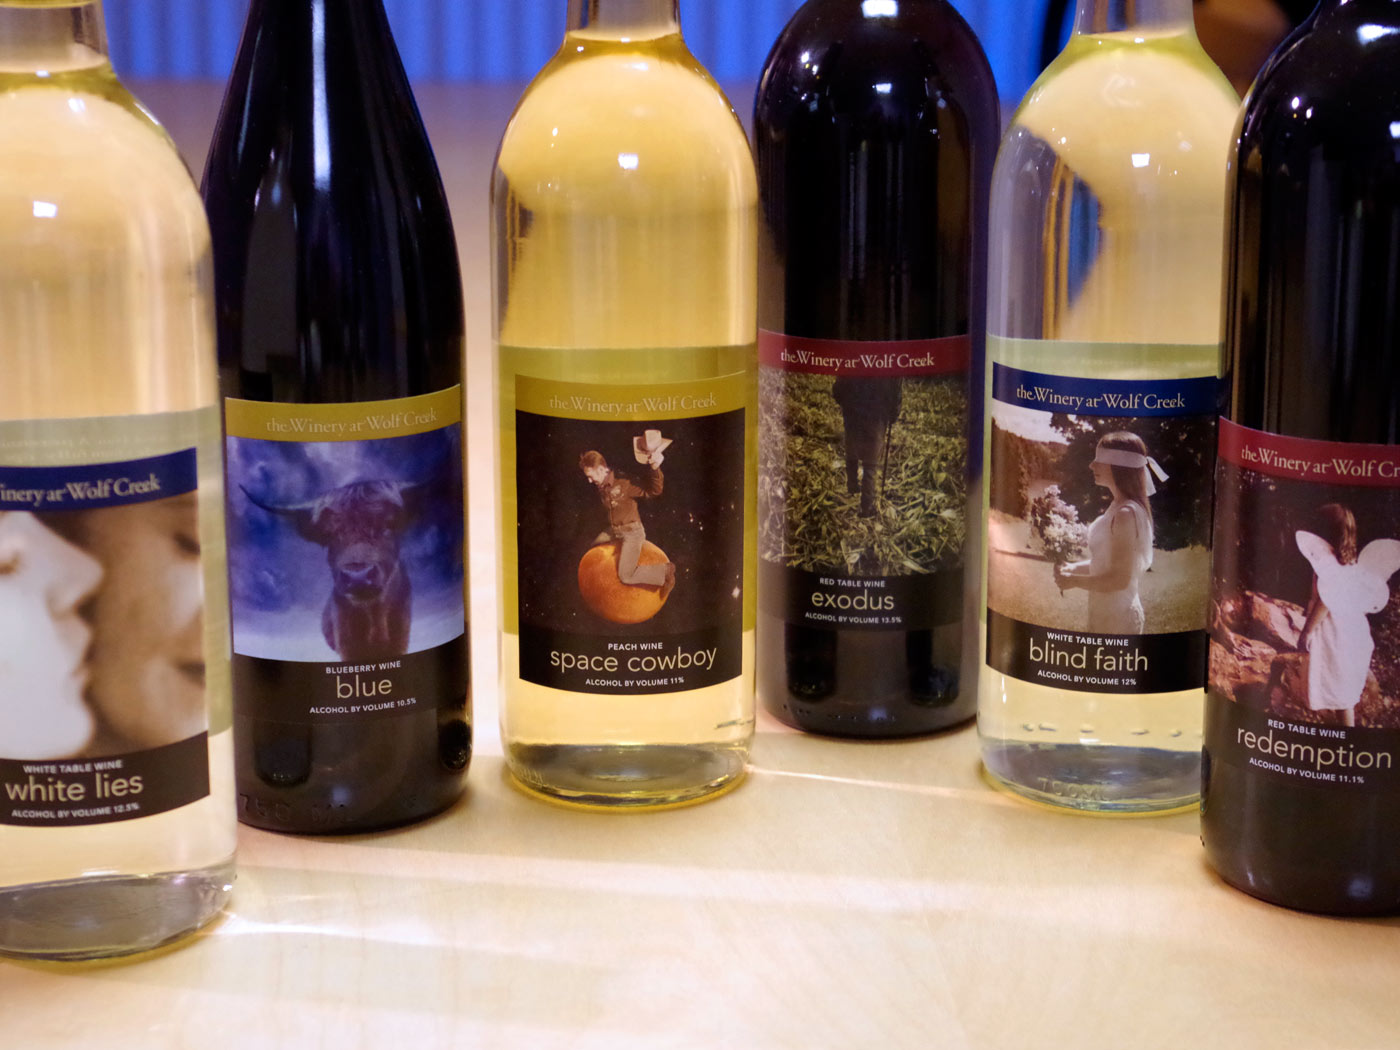 The Winery at Wolf Creek wine labels